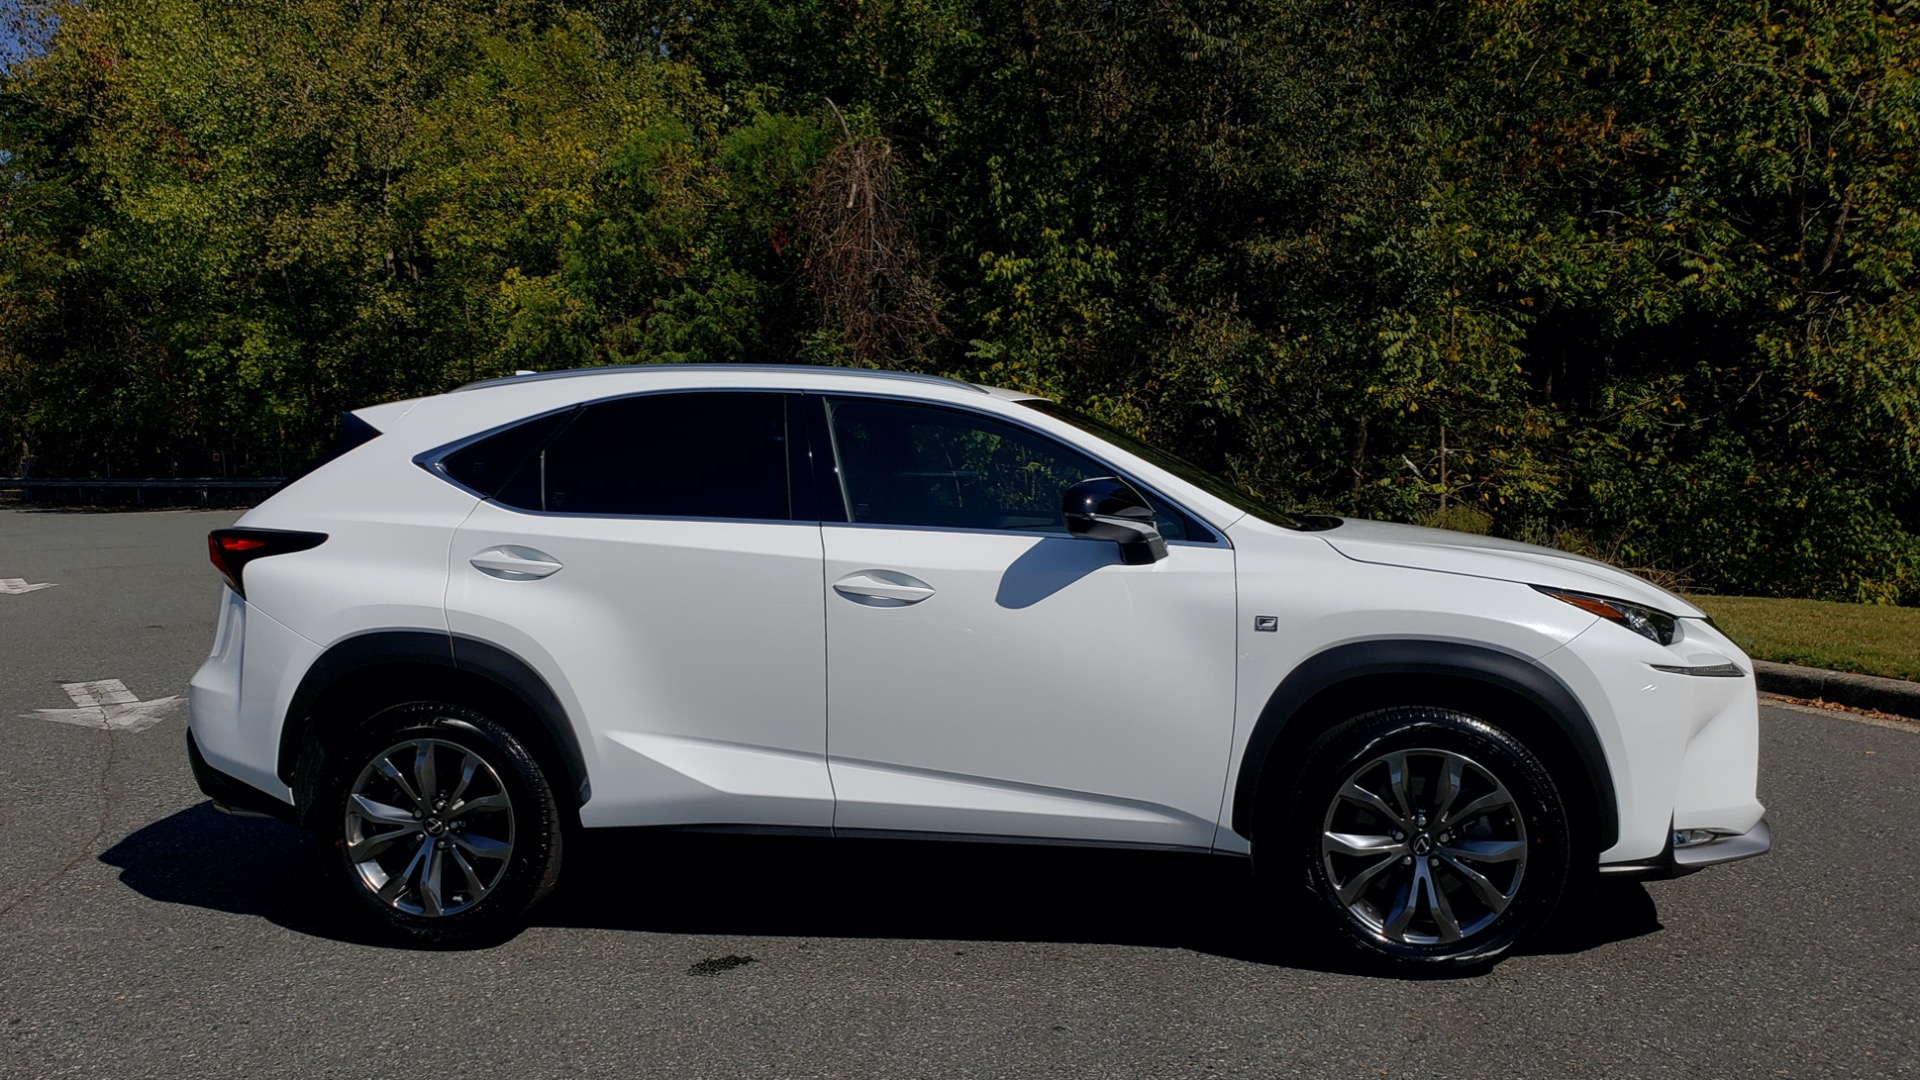 Used 2016 Lexus NX 200t F-SPORT / BACK-UP CAMERA / 18 INCH WHEELS for sale Sold at Formula Imports in Charlotte NC 28227 9